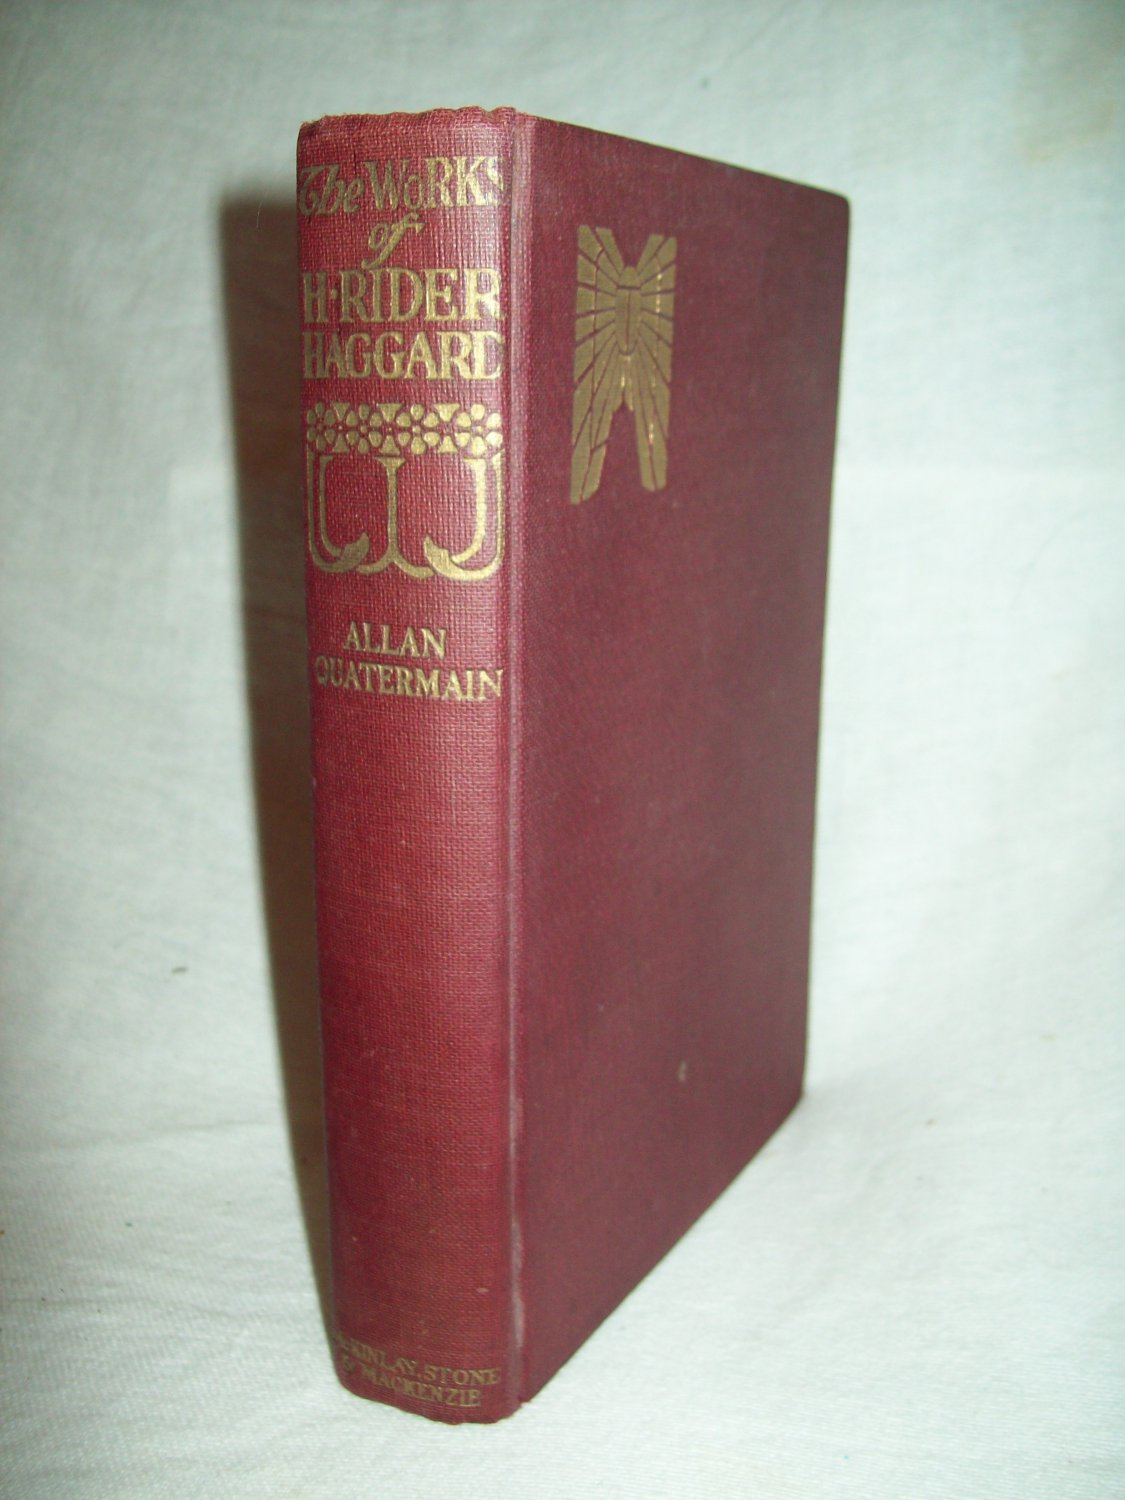 Allan Quartermain. H. Rider Haggard, author. Volume from The Works Of... set. VG.